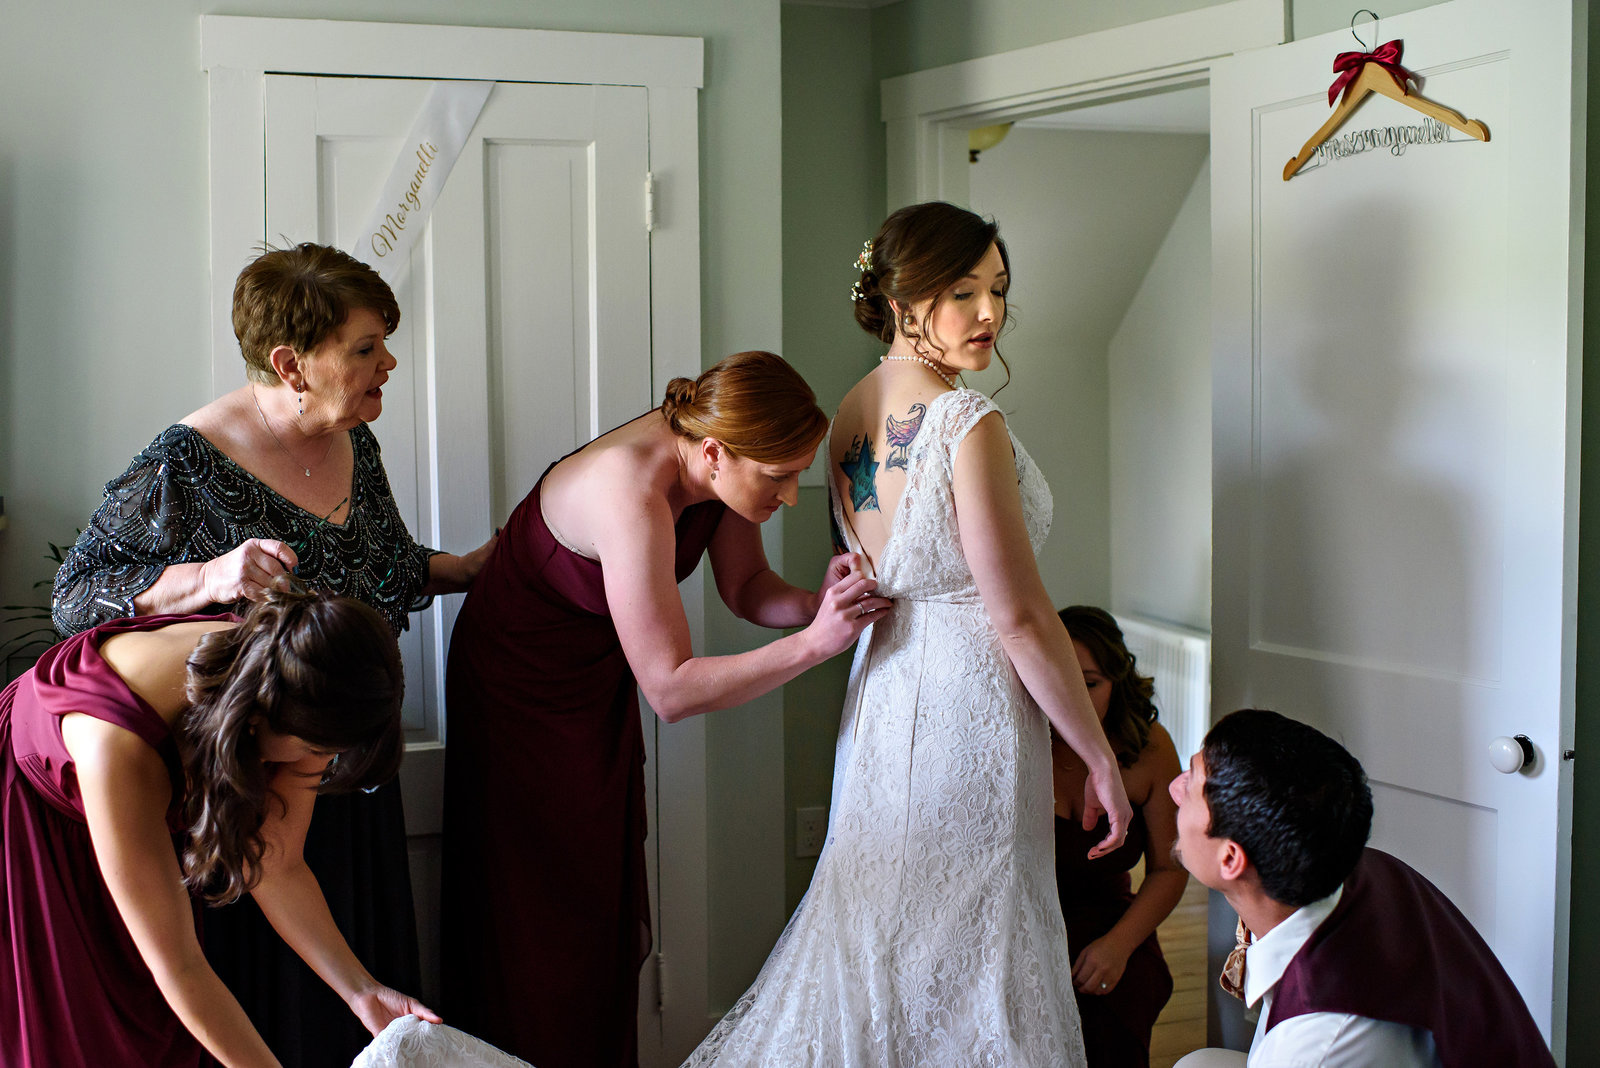 A bridal party helps bride get ready for the outside ceremony at this destination wedding in New Hampshire.